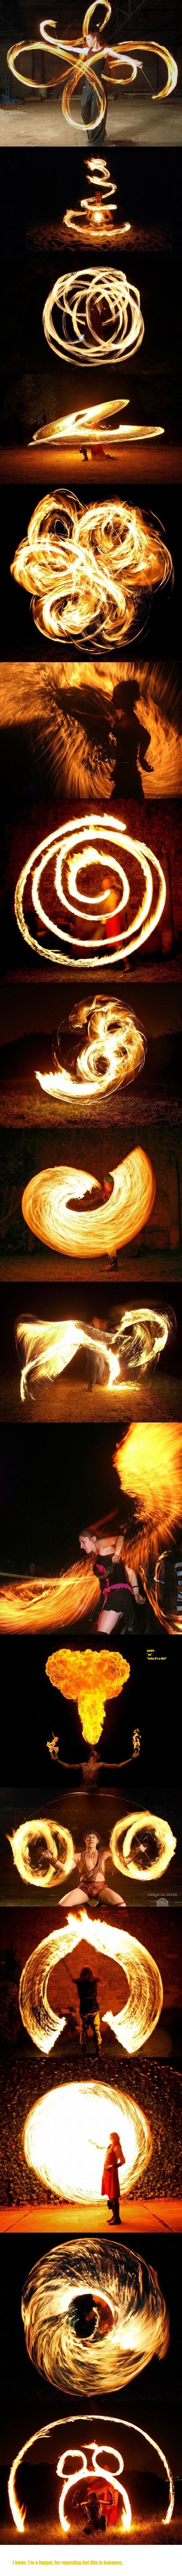 This collage of firespinning shows the creative power of a long exposure. With the shutter open, the camera is able to capture the complete movement of the firespinner, giving this feeling of flow and simplicity to the image. I hope to create some light painting photographs with my project.